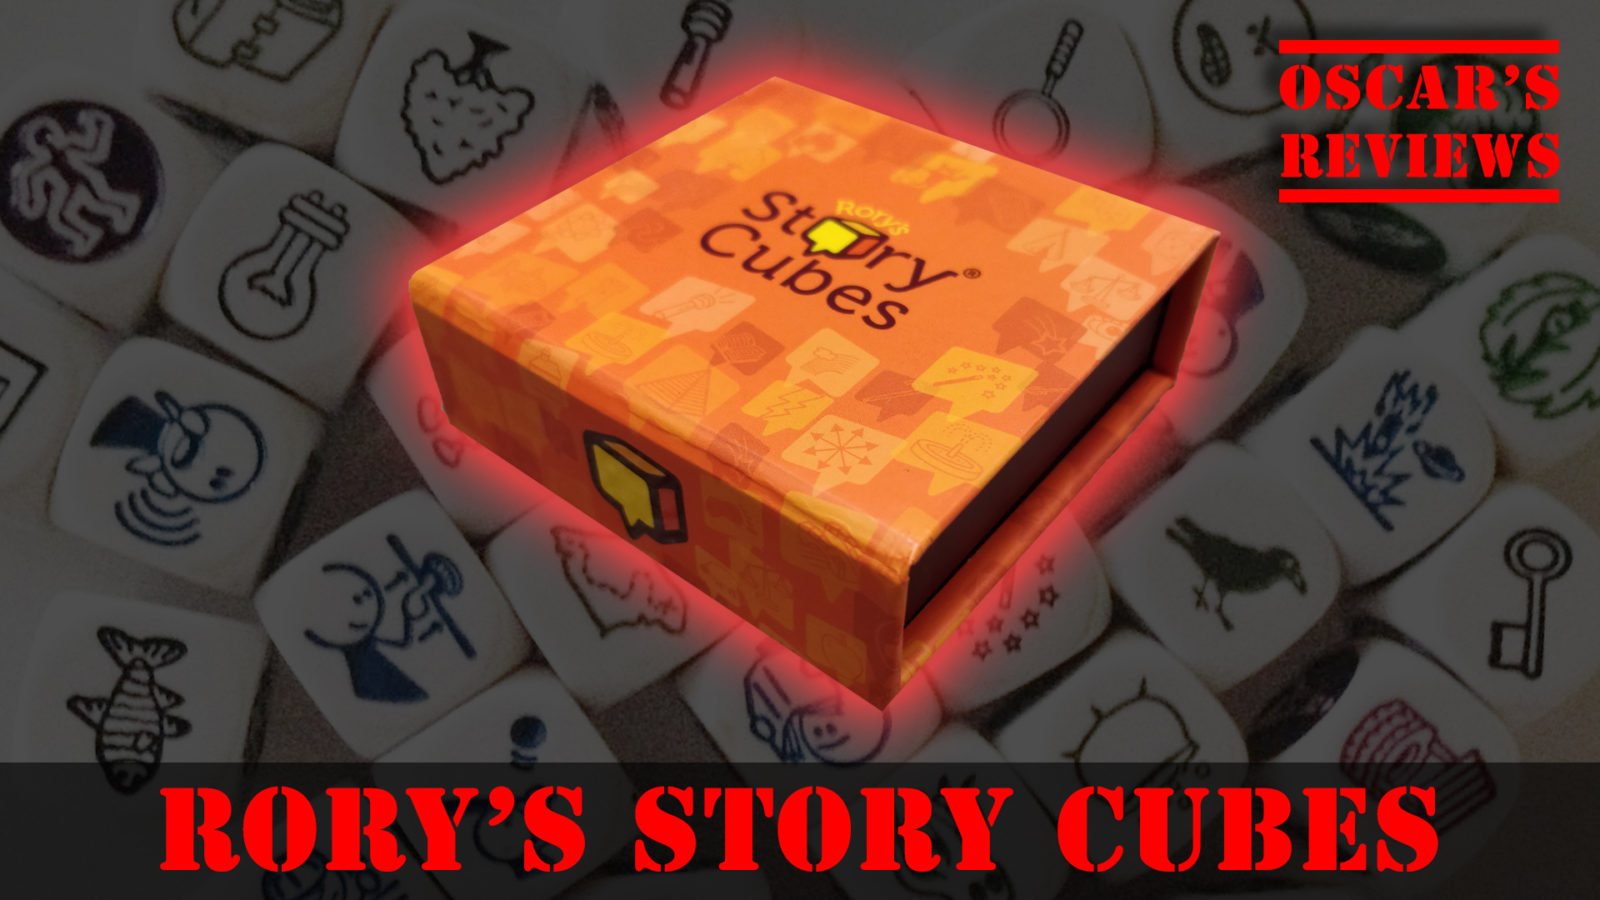 A Magical Lock-Picking Flying Postman?! It Must be Rory's Story Cubes!